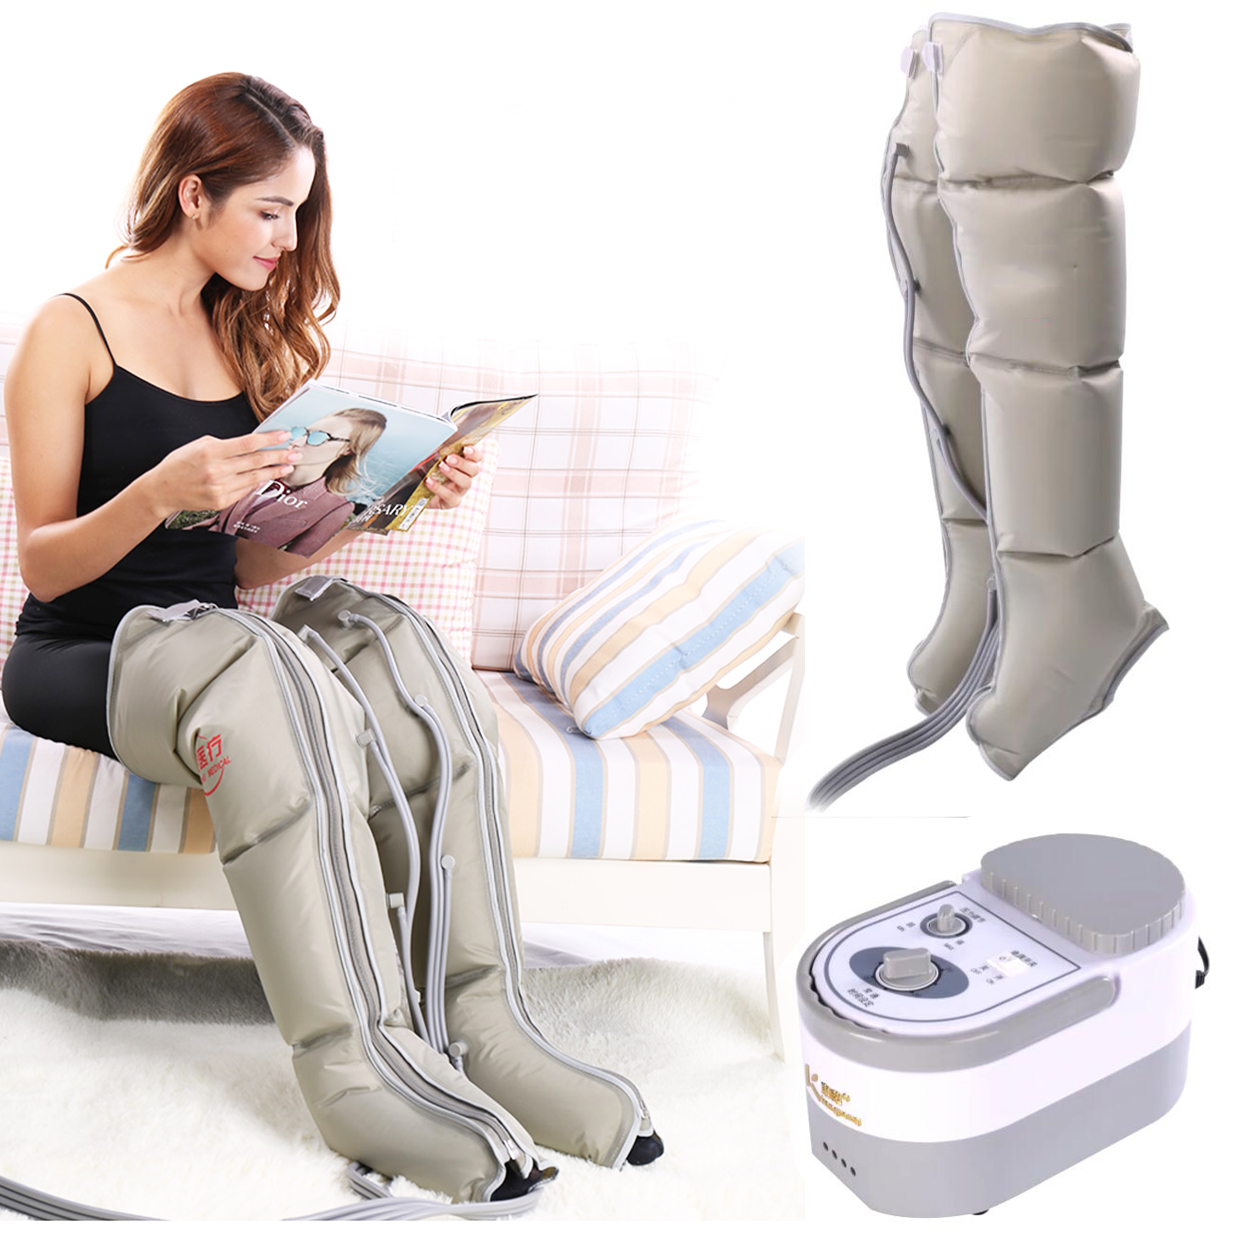 Electric Air Compression Leg Massager Leg Wraps Foot Ankles Calf Massage Machine Promote Blood Circulation Relieve Pain Fatigue(China)